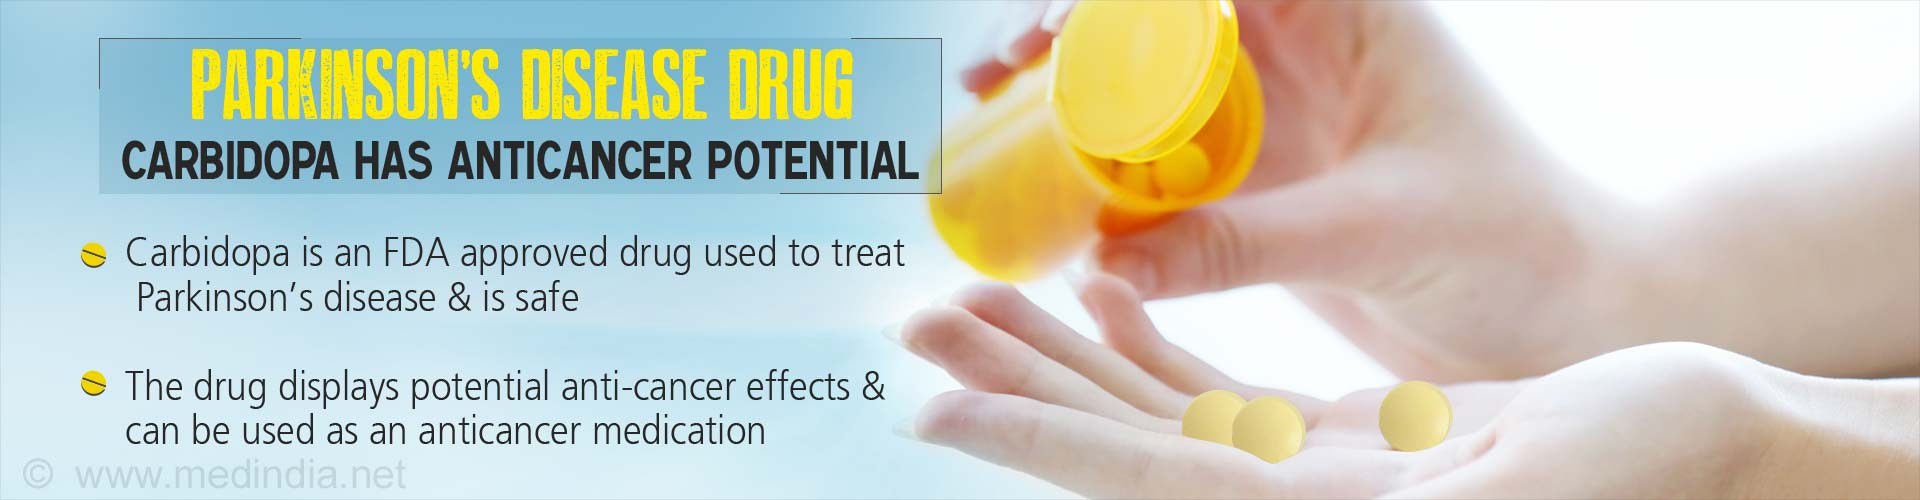 Parkinson's disease drug carbidopa has anticancer potential - Carbidopa is an FDA approves drug use to treat Parkinson's disease & is safe - The drug displays potential anti-cancer effects & can be used as an anticancer medication